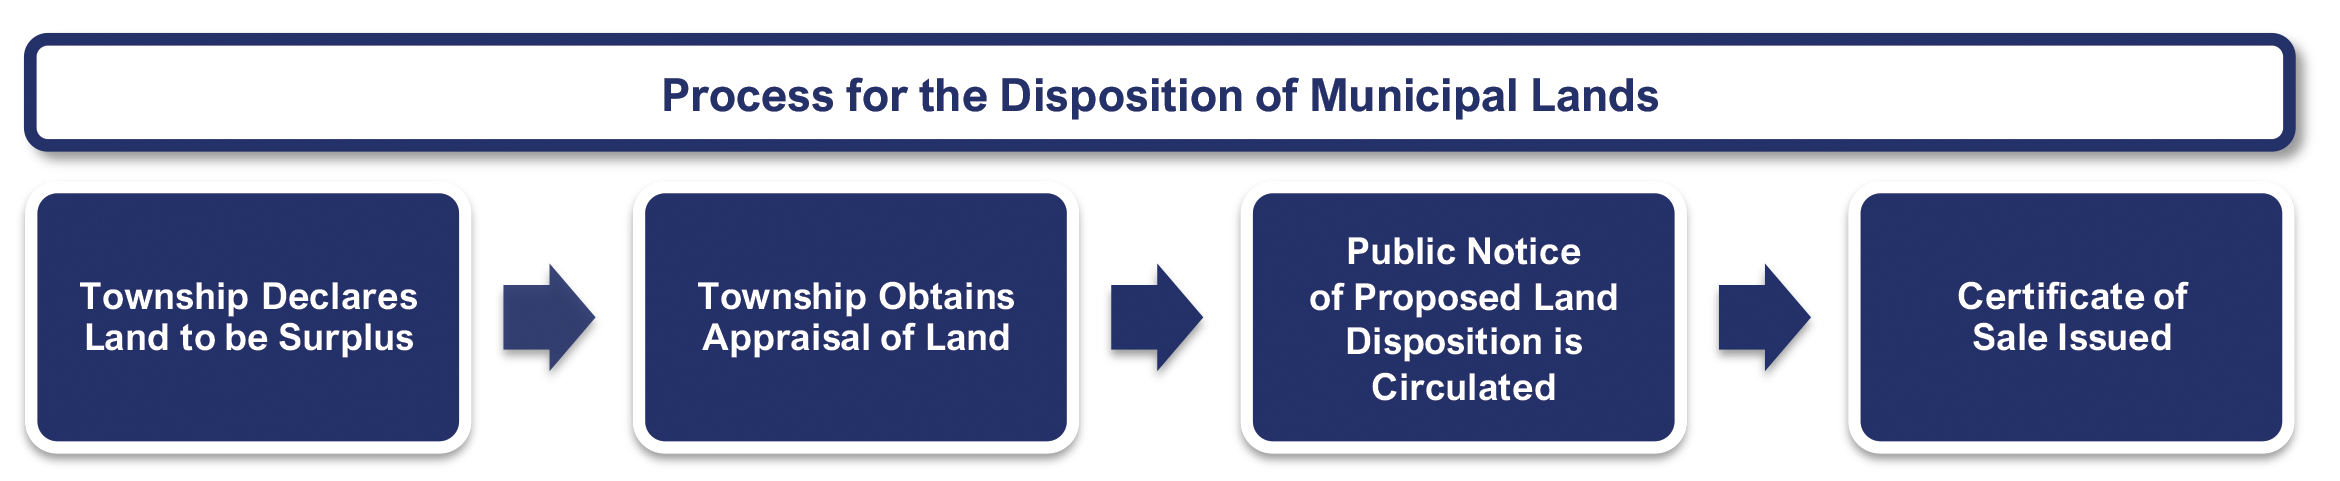 Process for the disposal of municipal lands